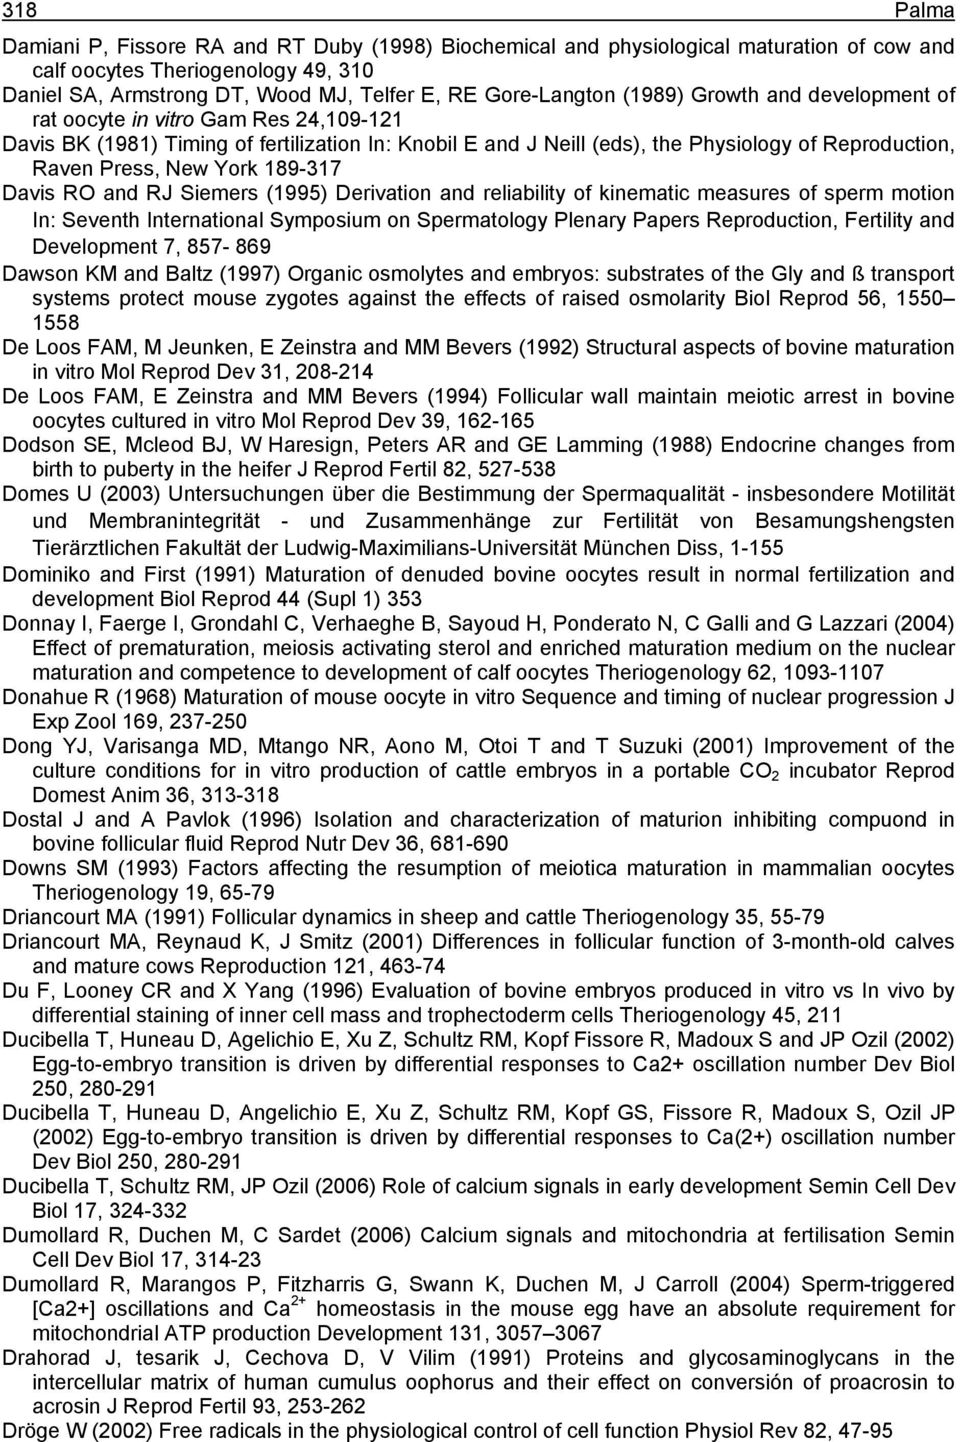 189-317 Davis RO and RJ Siemers (1995) Derivation and reliability of kinematic measures of sperm motion In: Seventh International Symposium on Spermatology Plenary Papers Reproduction, Fertility and